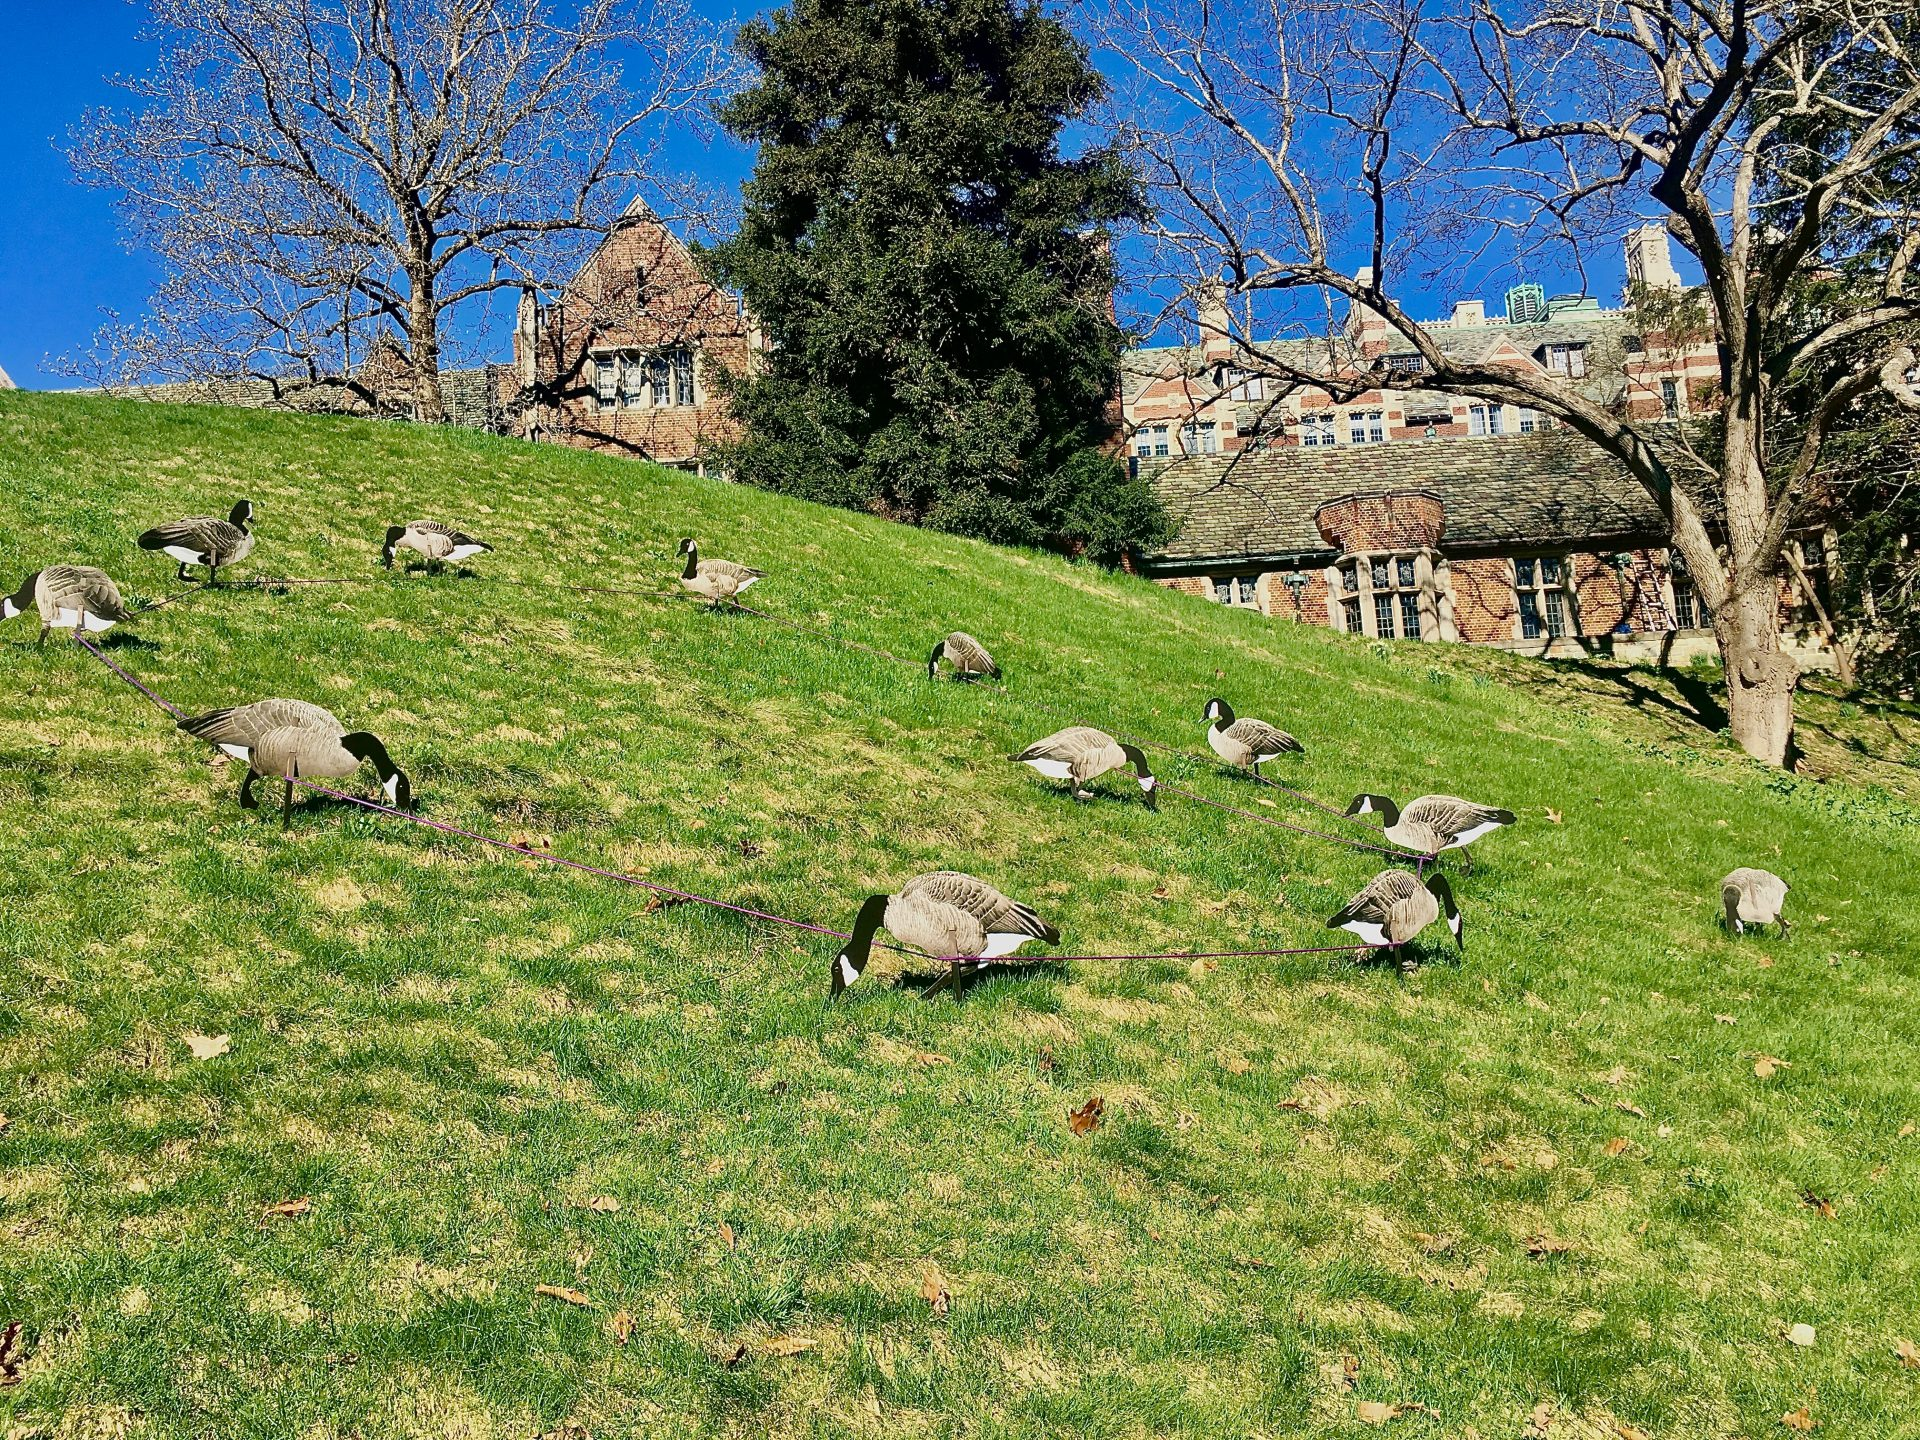 Canada geese, Wellesley College